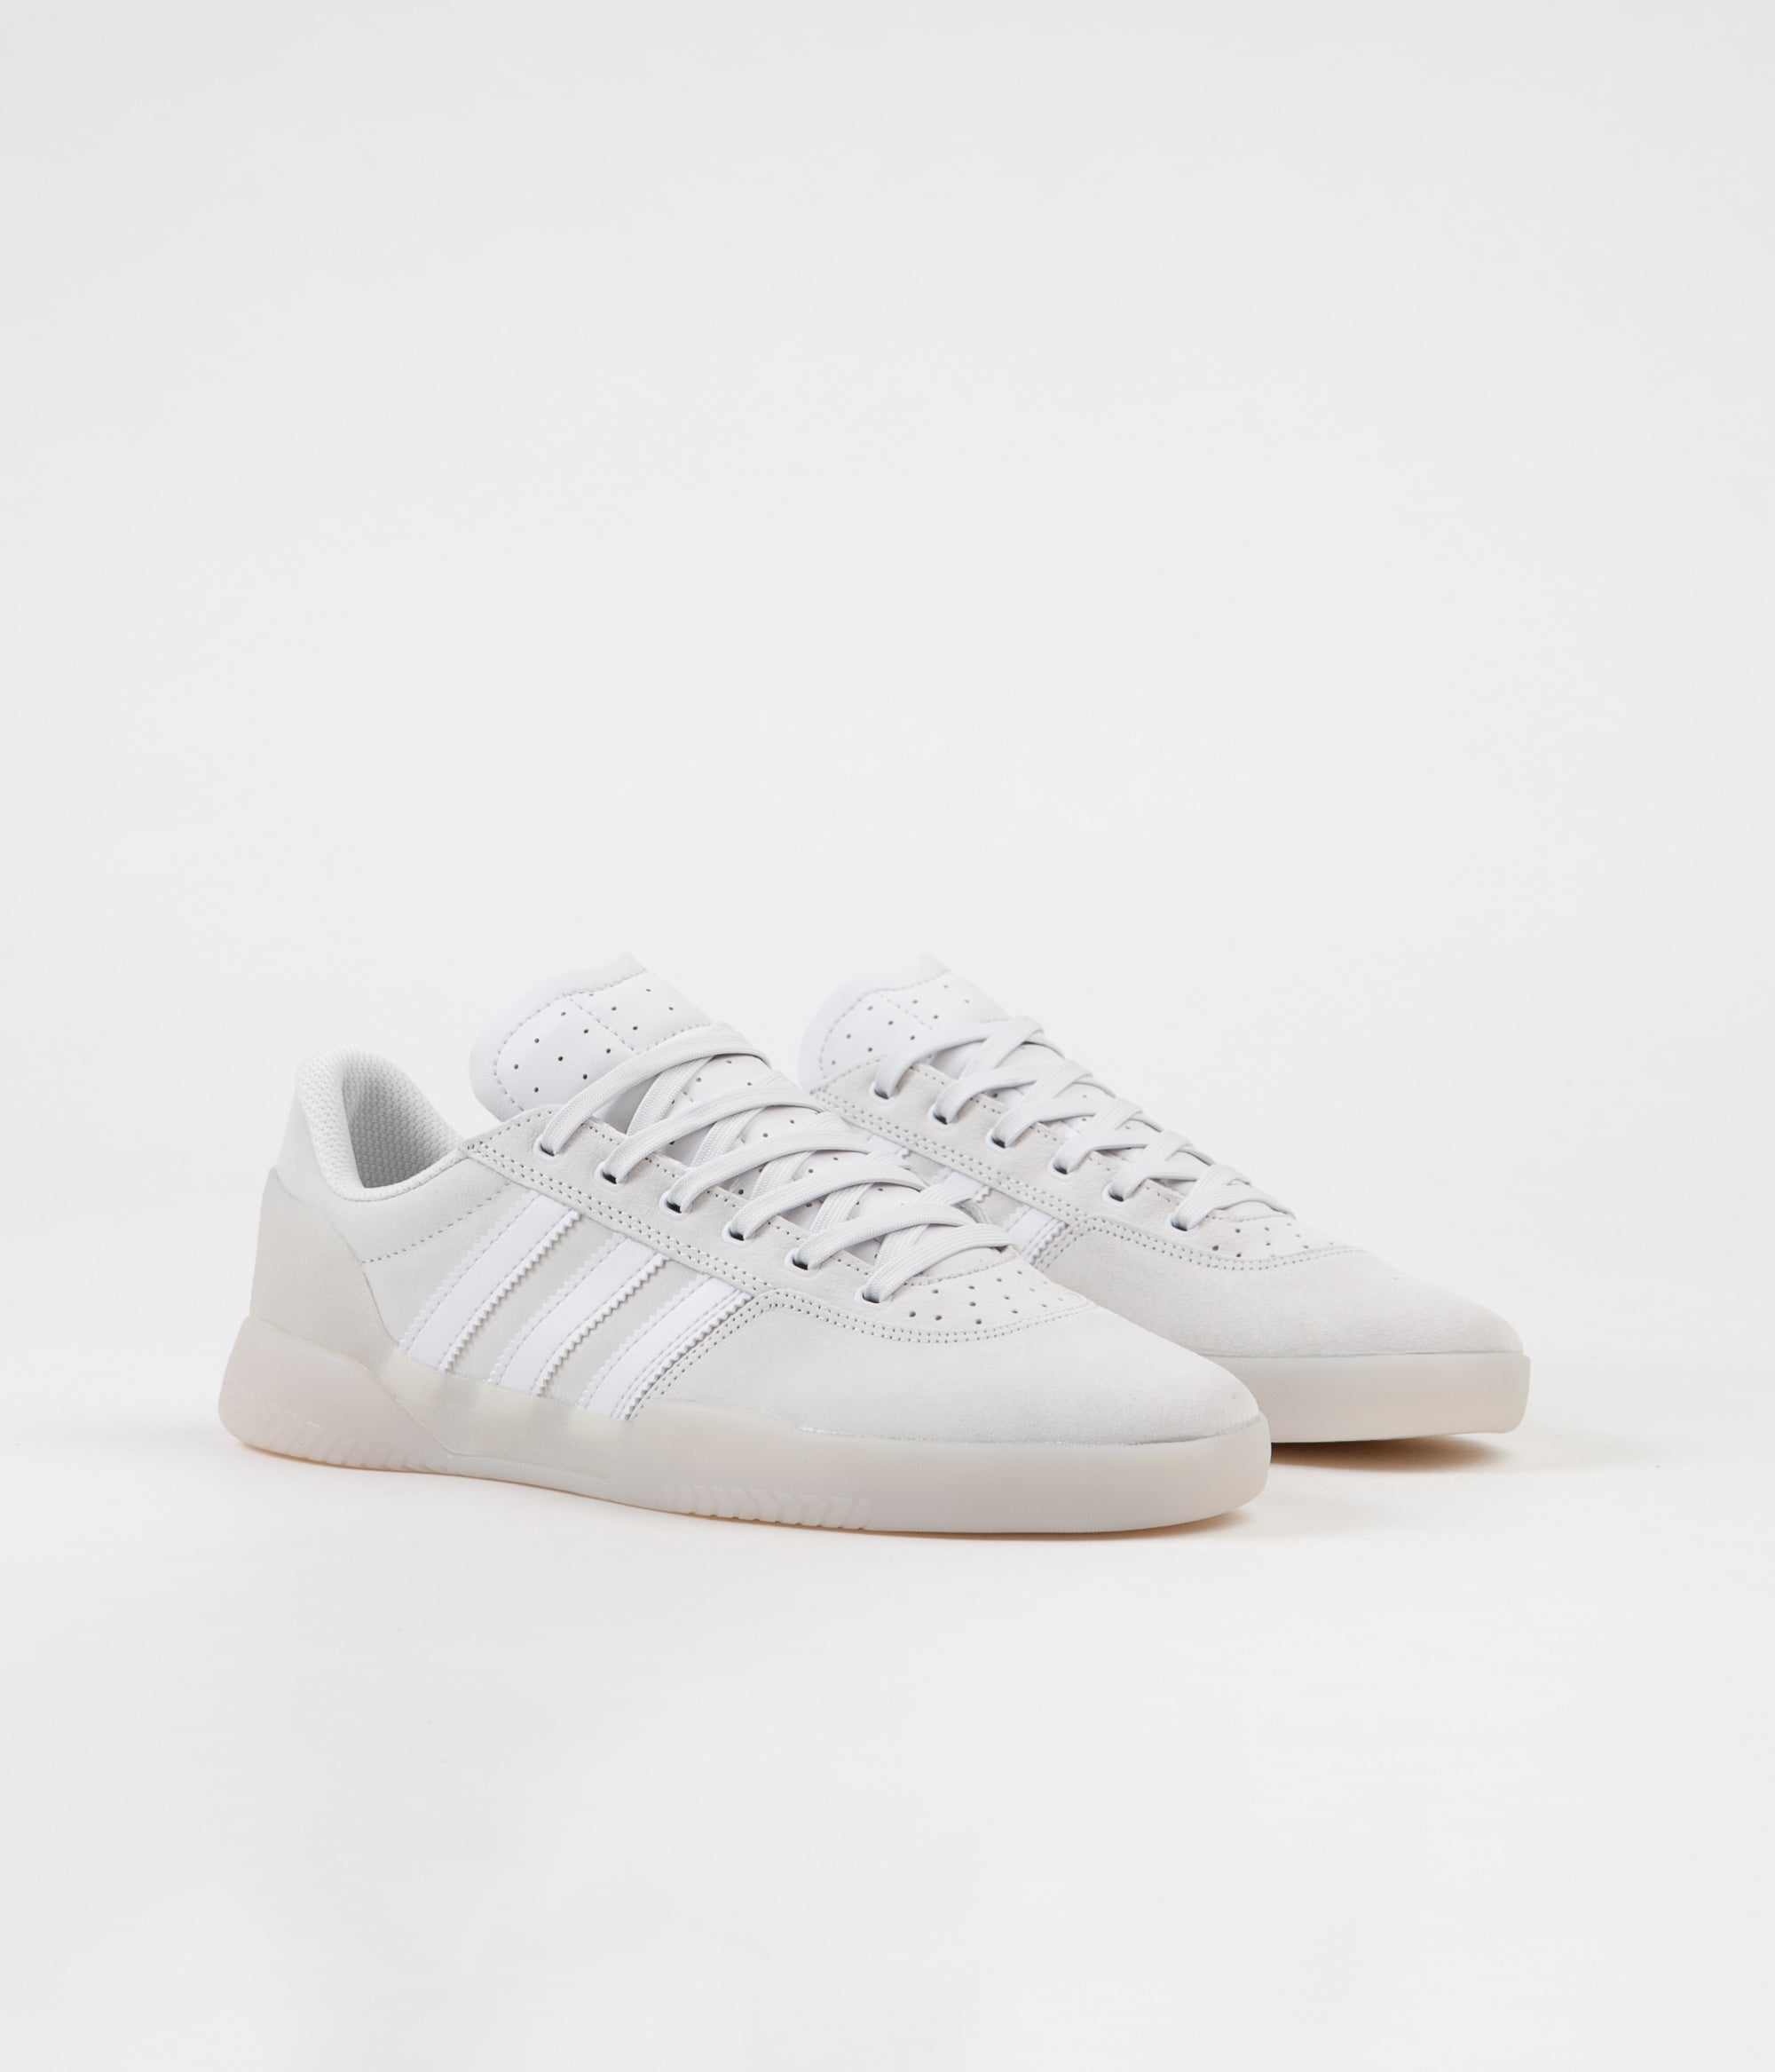 sports shoes 13a7c 02ef2 Adidas City Cup Shoes - Crystal White  Crystal White  Crystal White